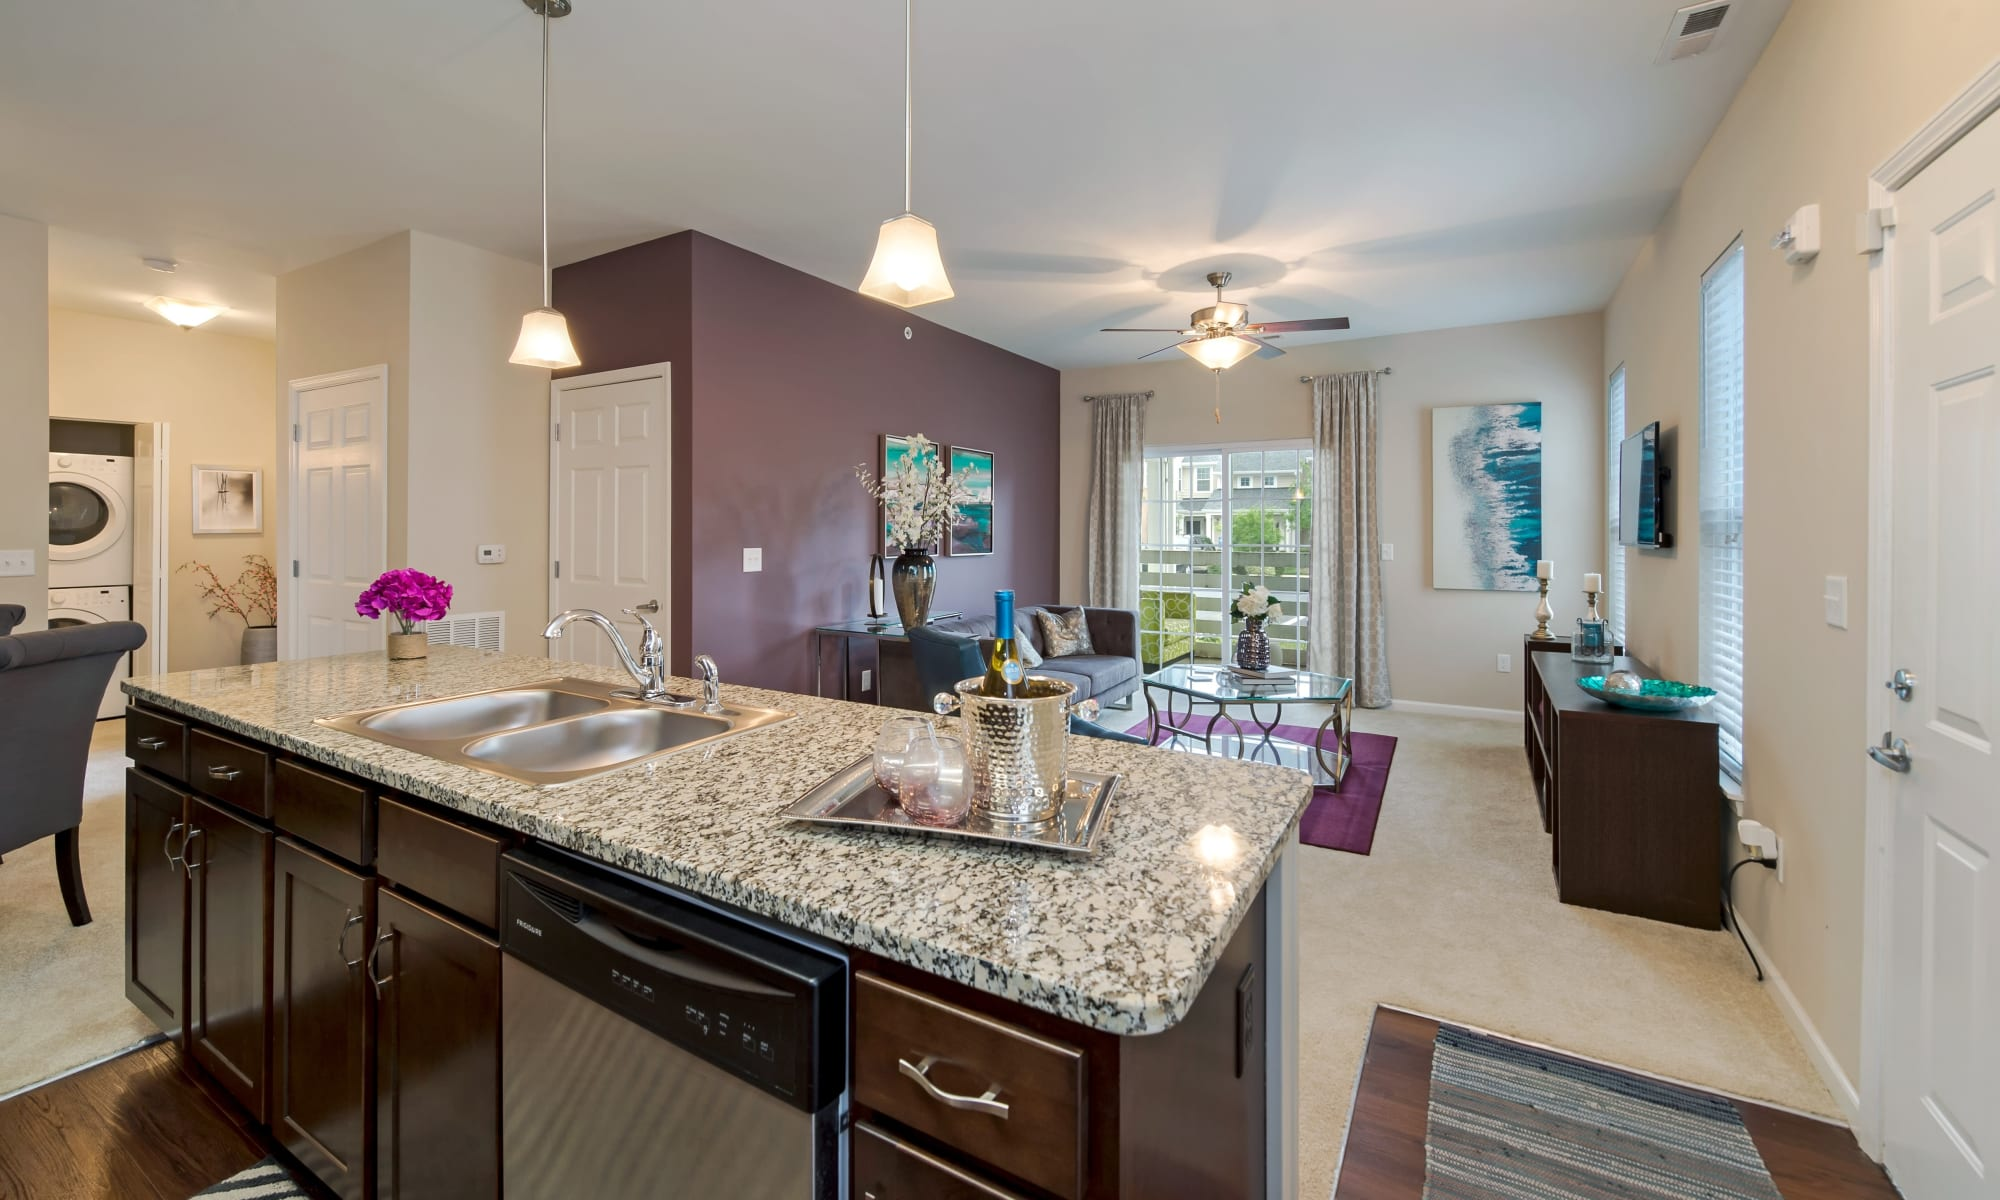 Luxury apartments at Cumberland Pointe in Noblesville, IN